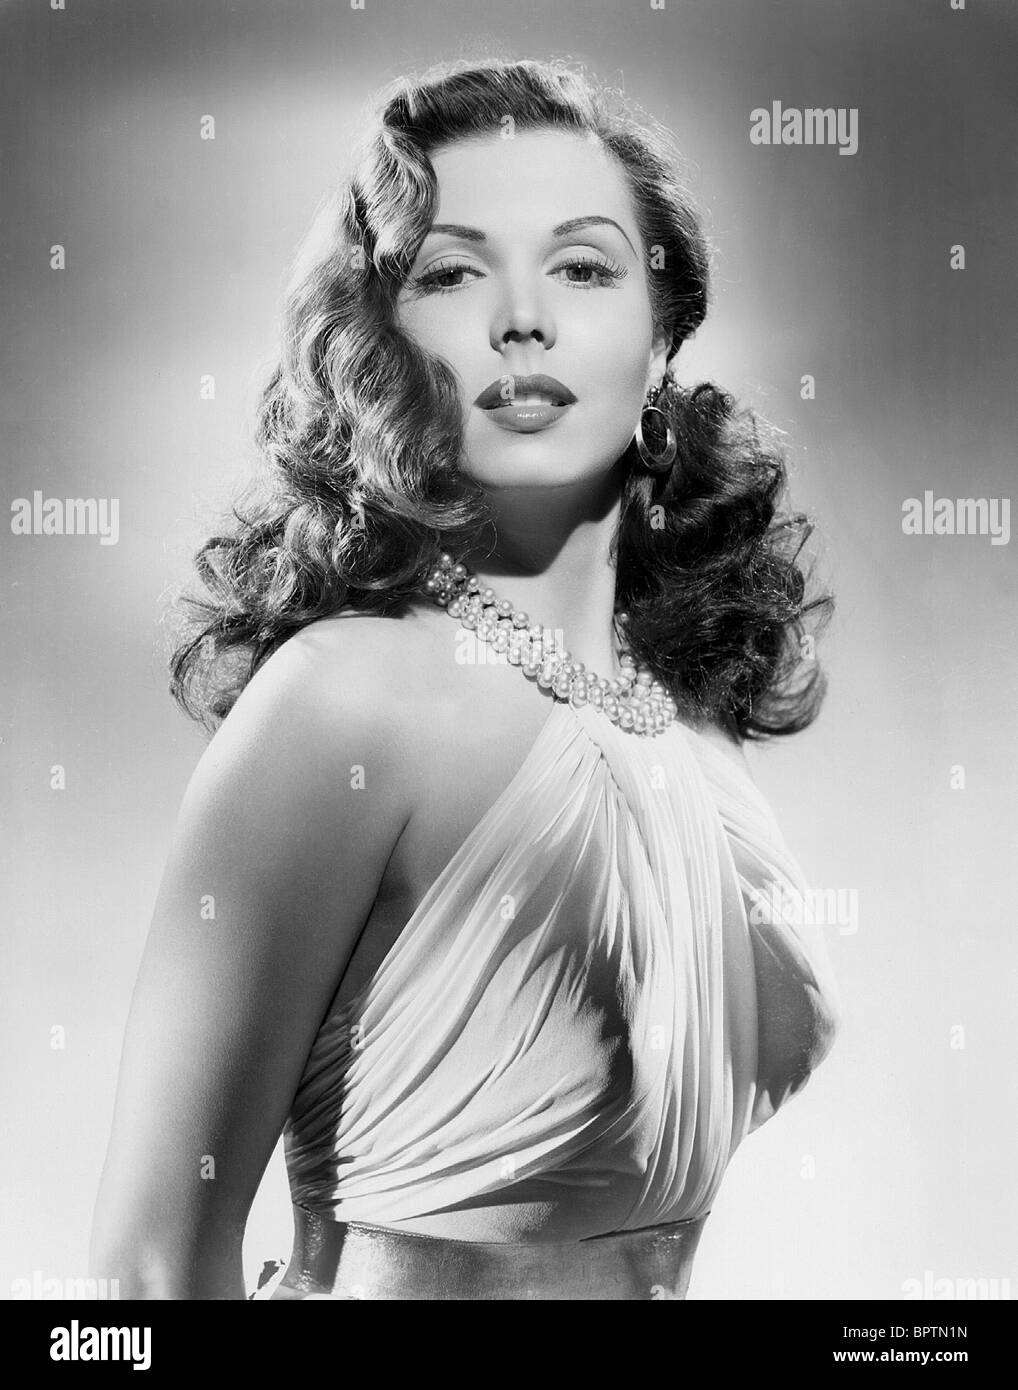 ANN MILLER ACTRESS (1947) - Stock Image